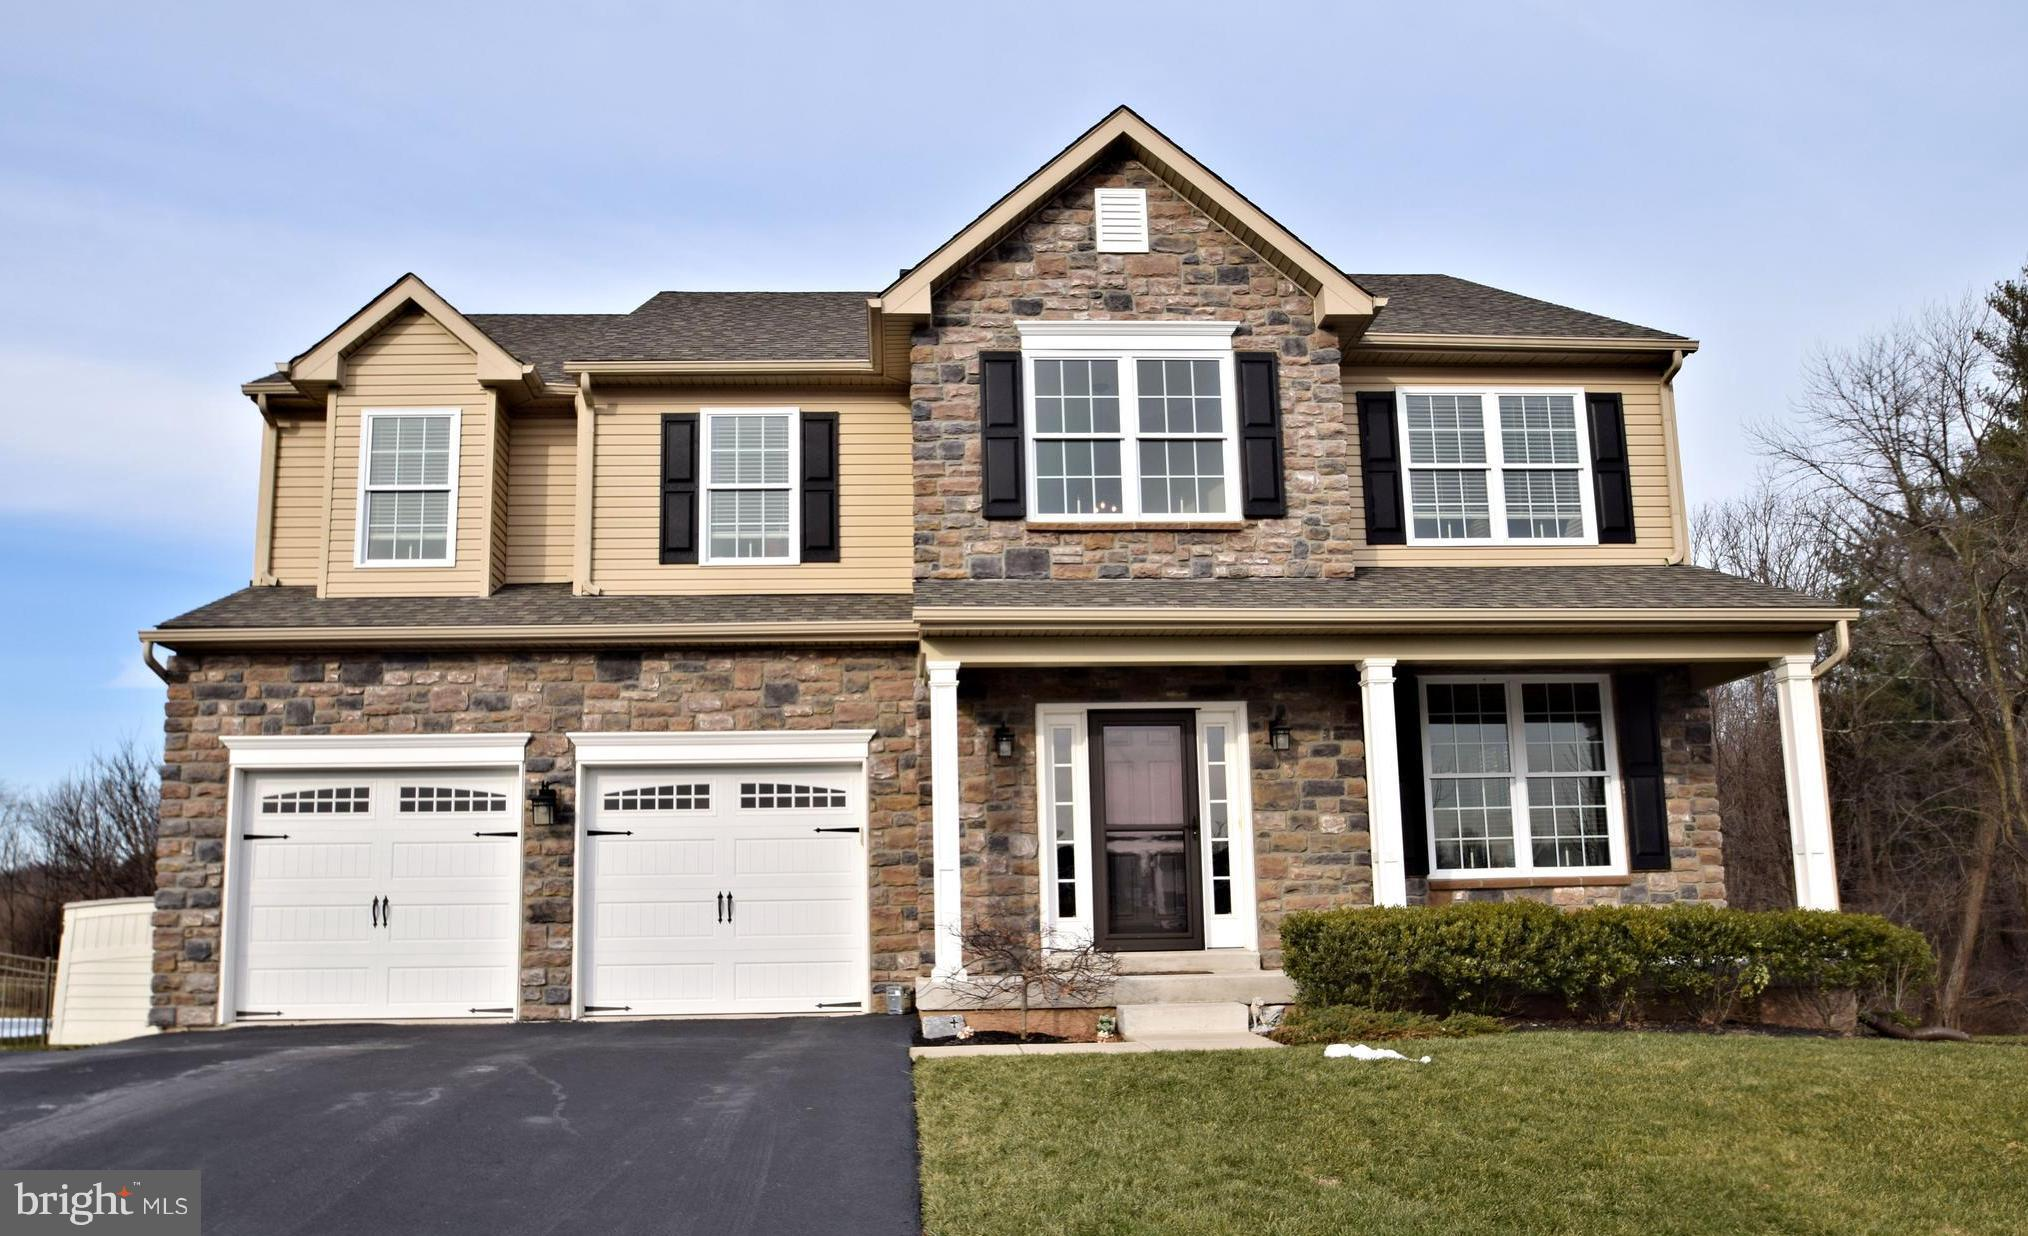 96 OAK CREEK DRIVE, ROYERSFORD, PA 19468